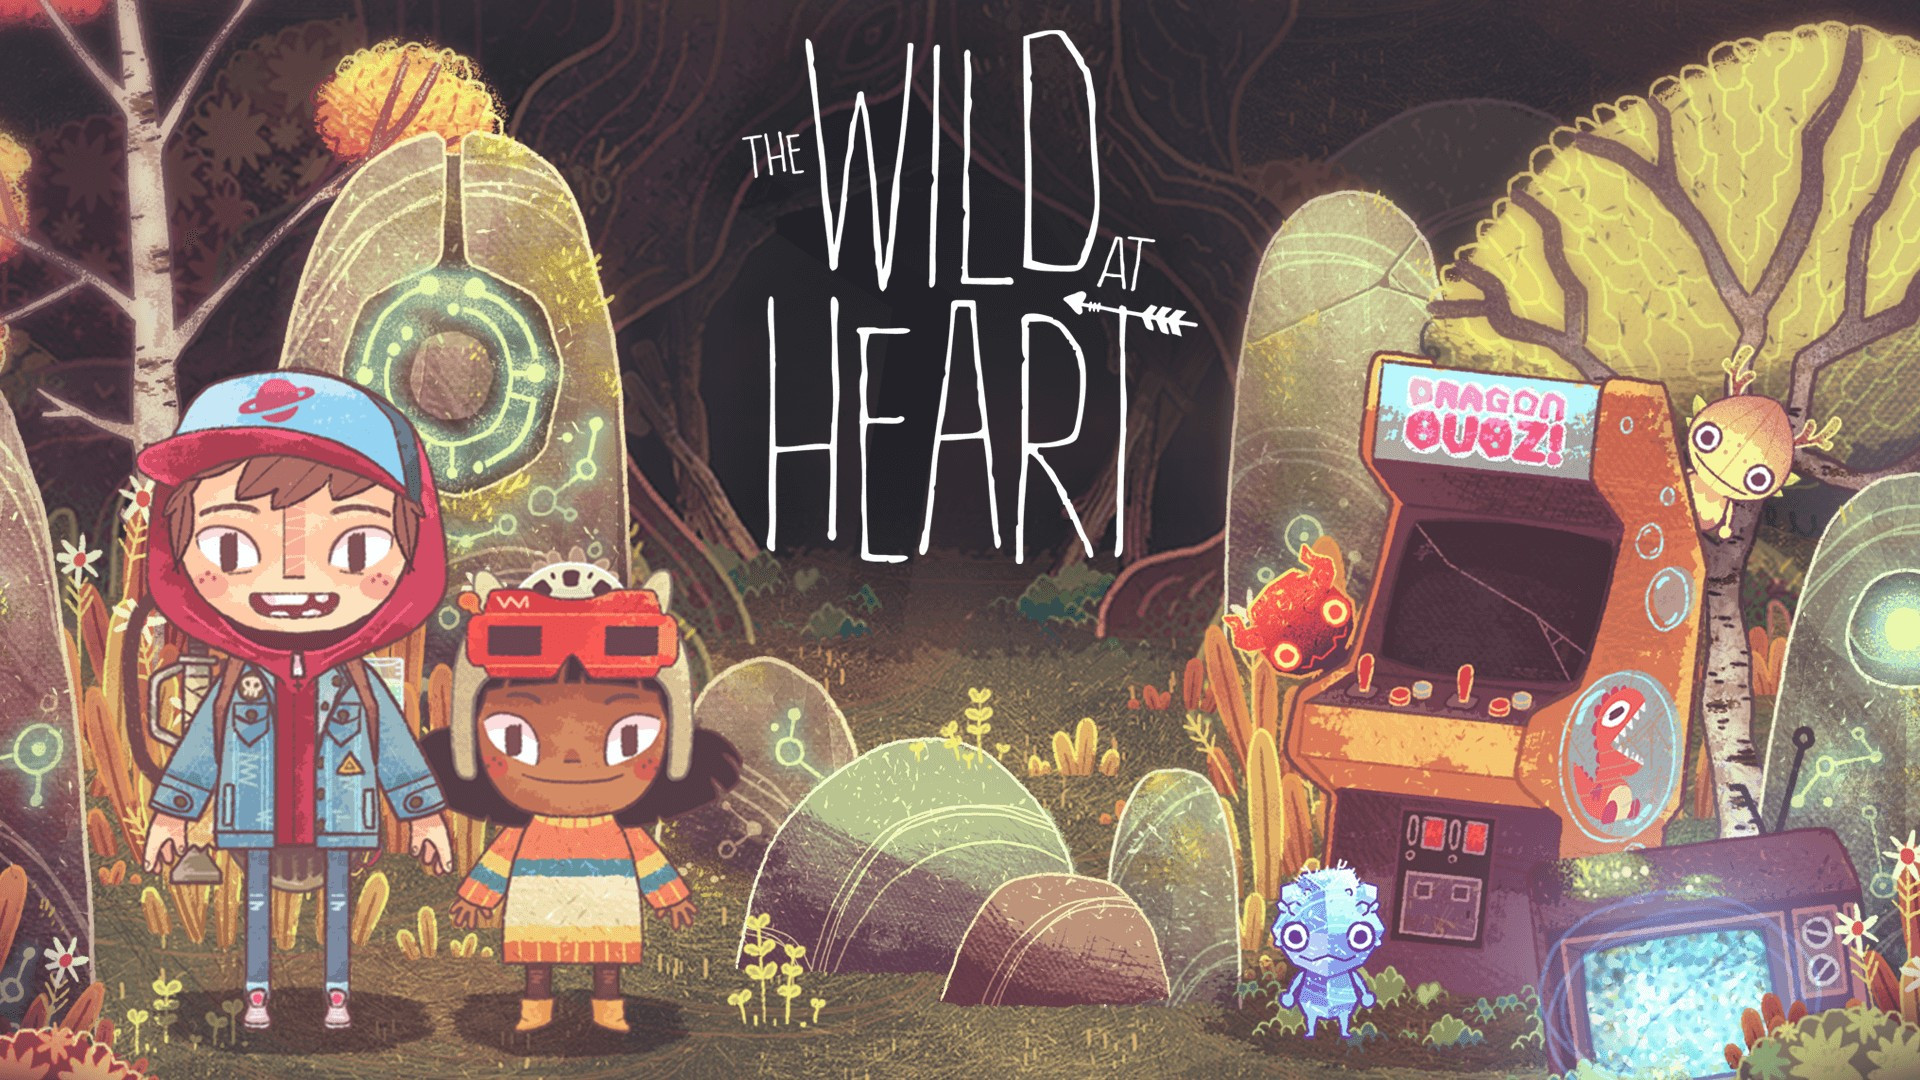 The Wild at Heart 1